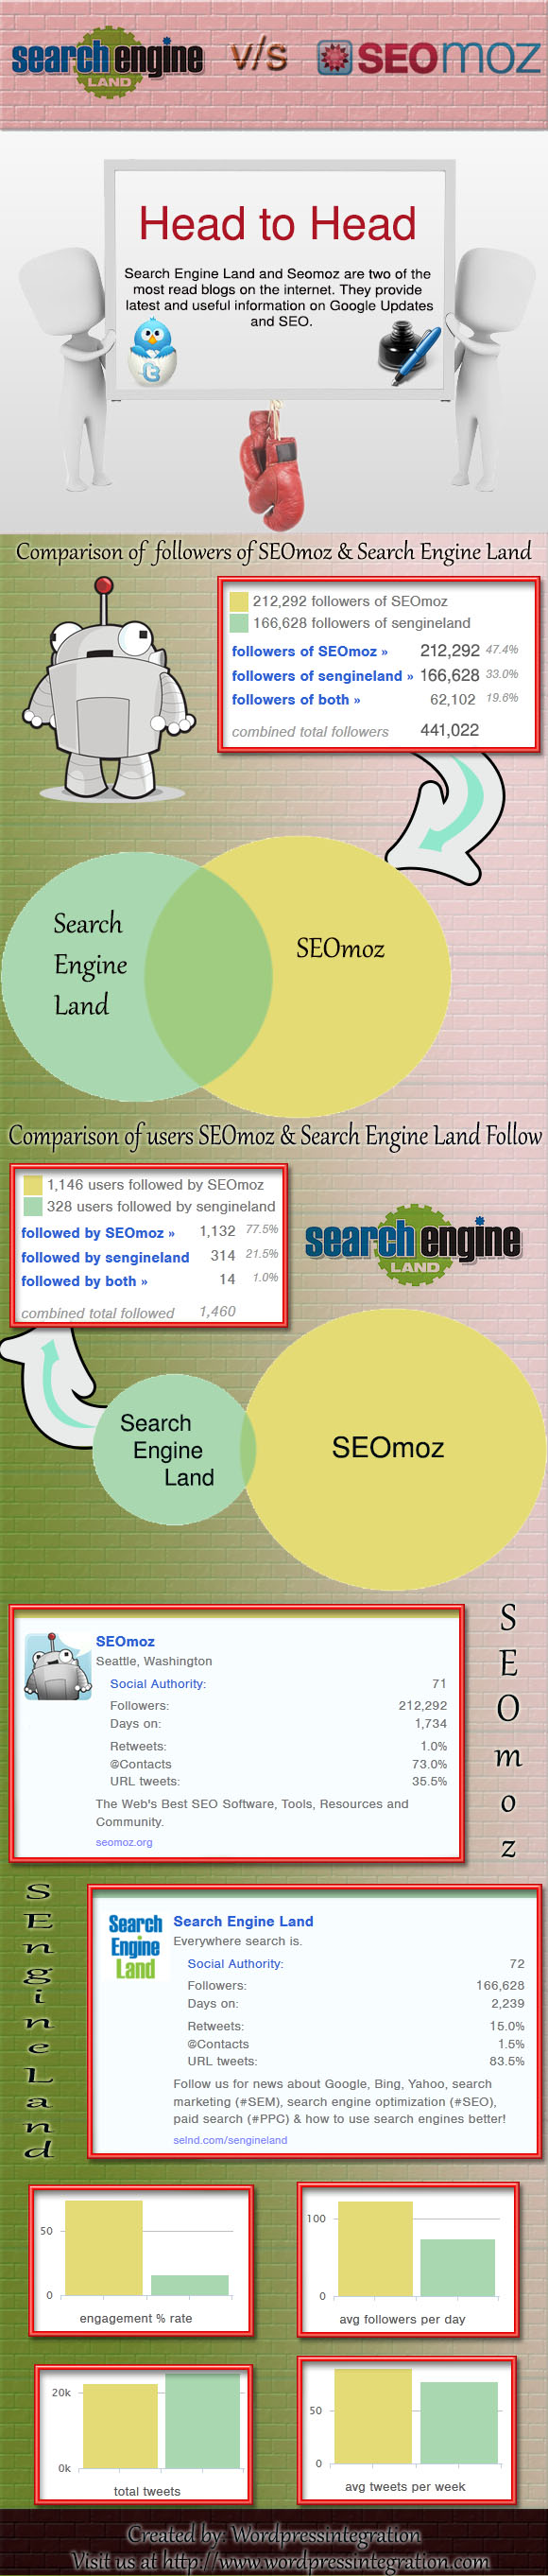 search-engine-land-vs-seomoz infographic